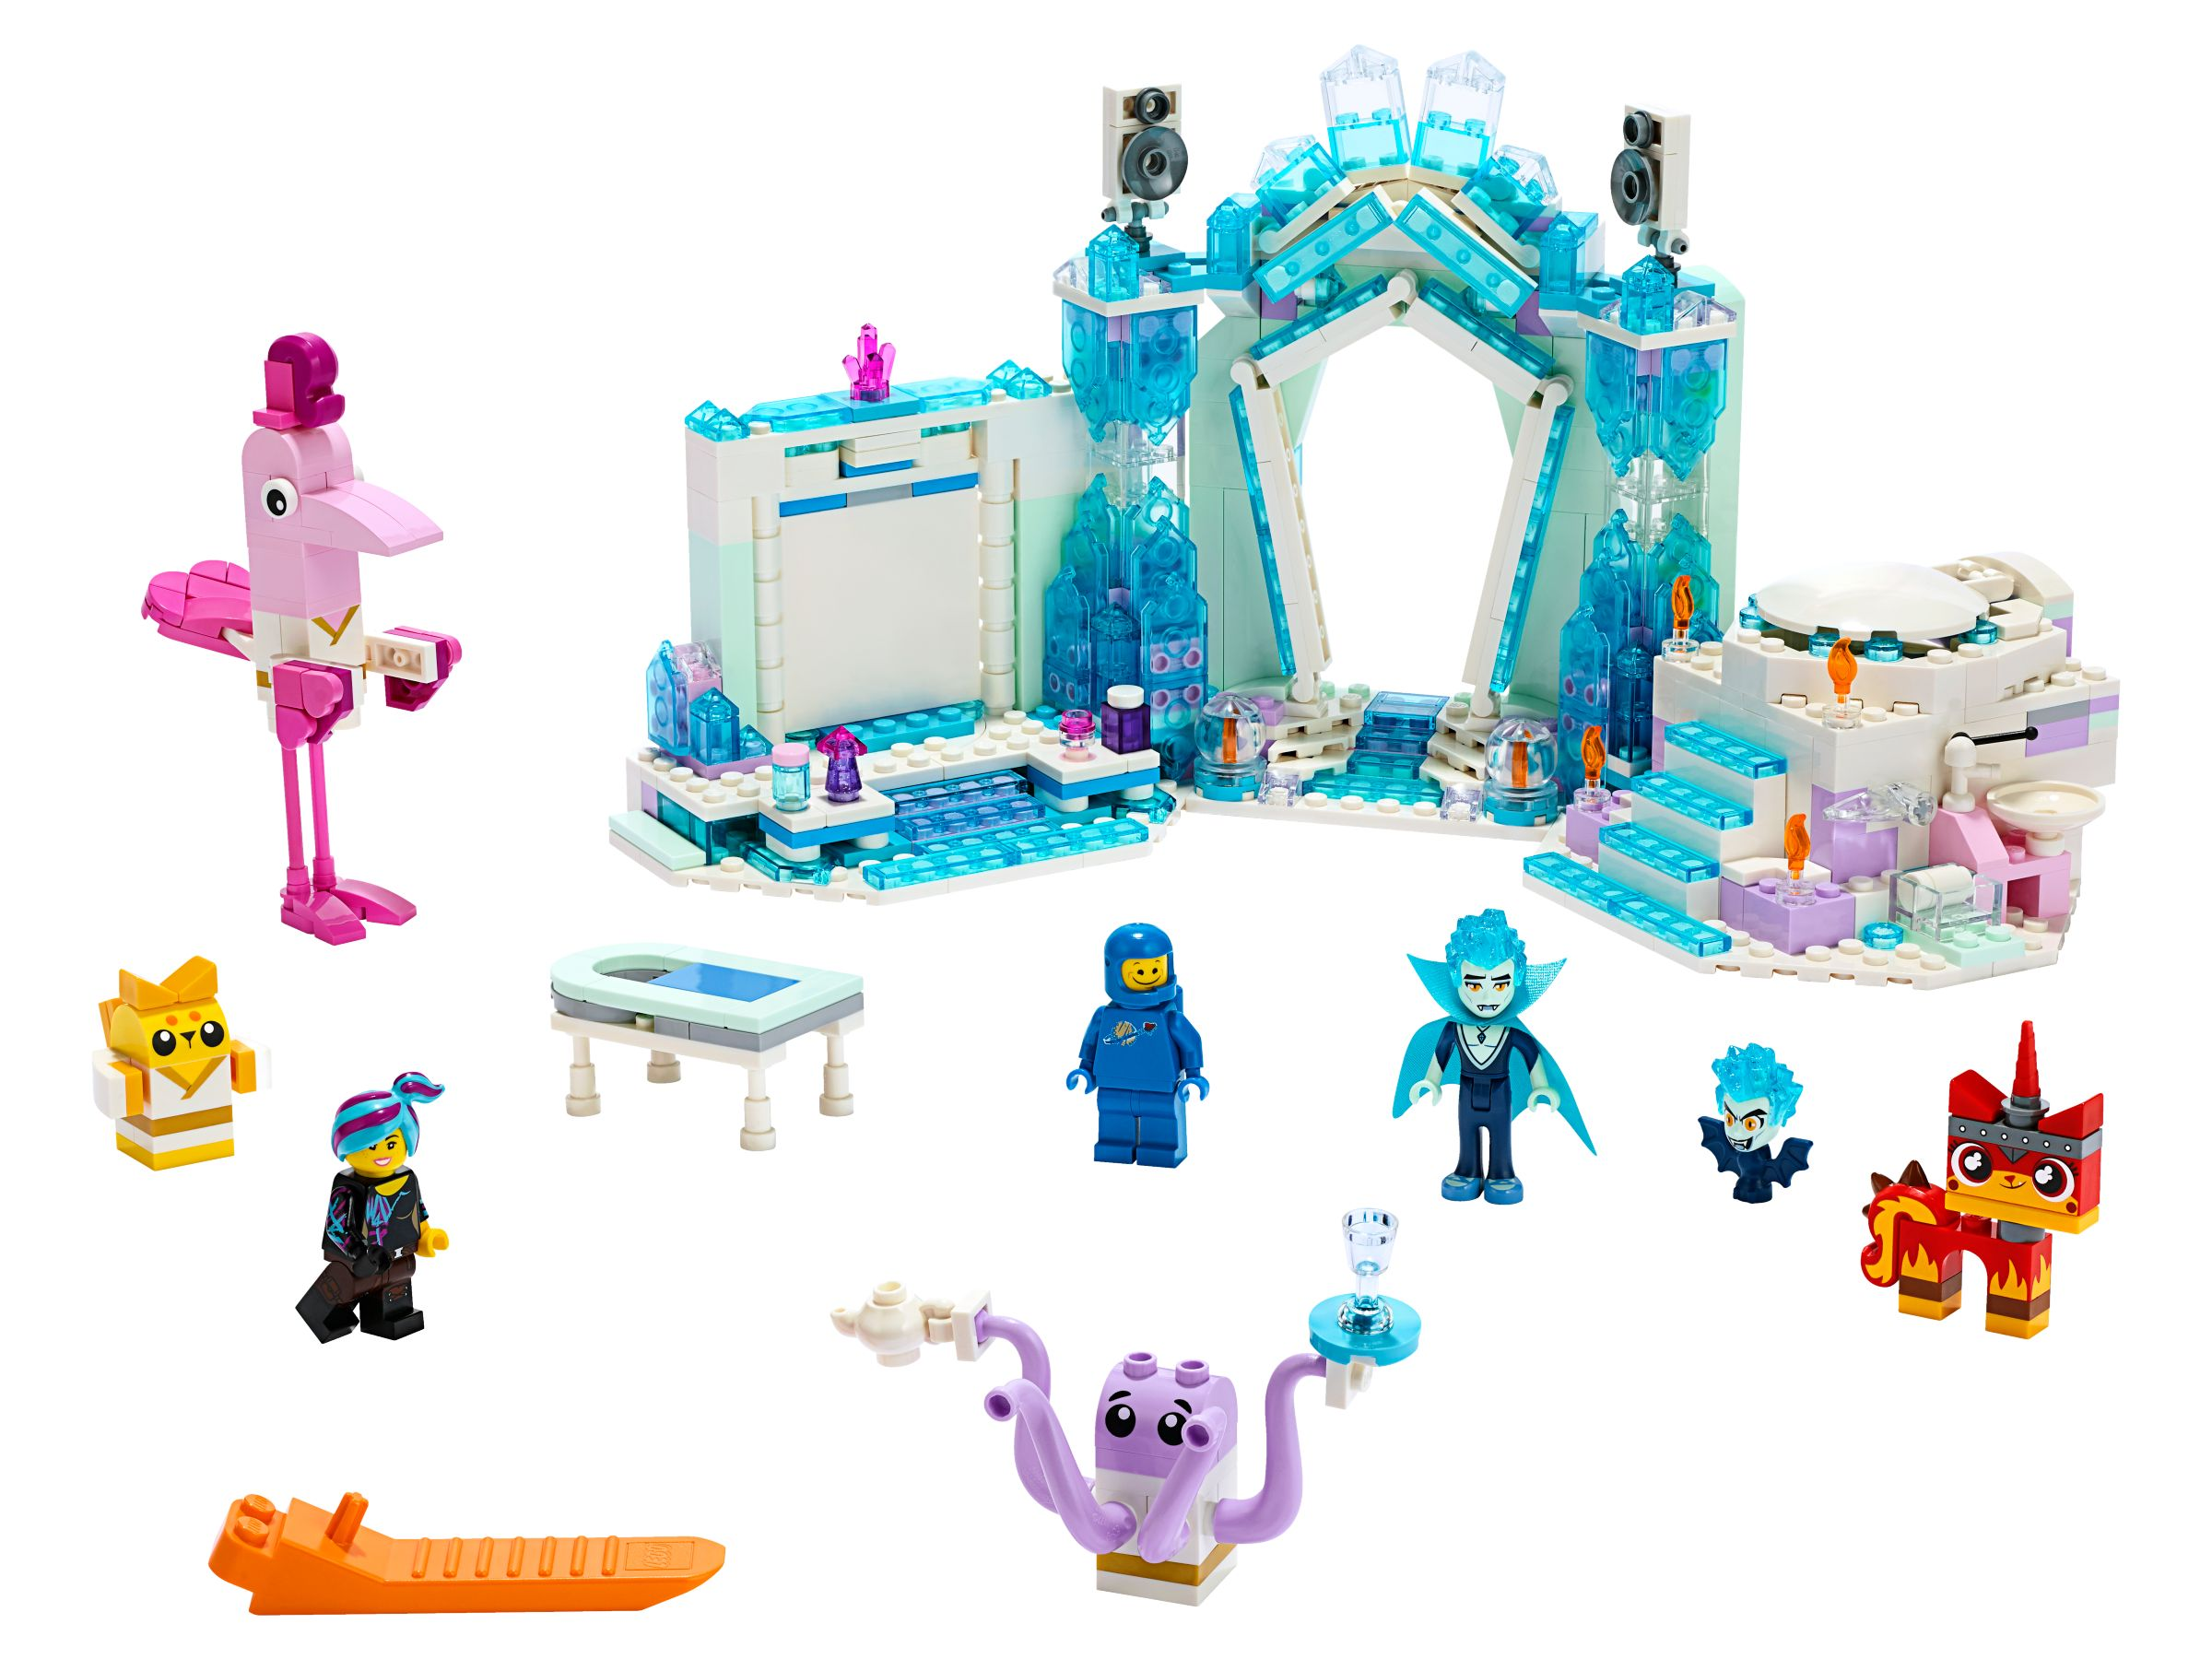 LEGO The Lego Movie 2 70837 Schimmerndes Glitzer-Spa! LEGO_70837.jpg